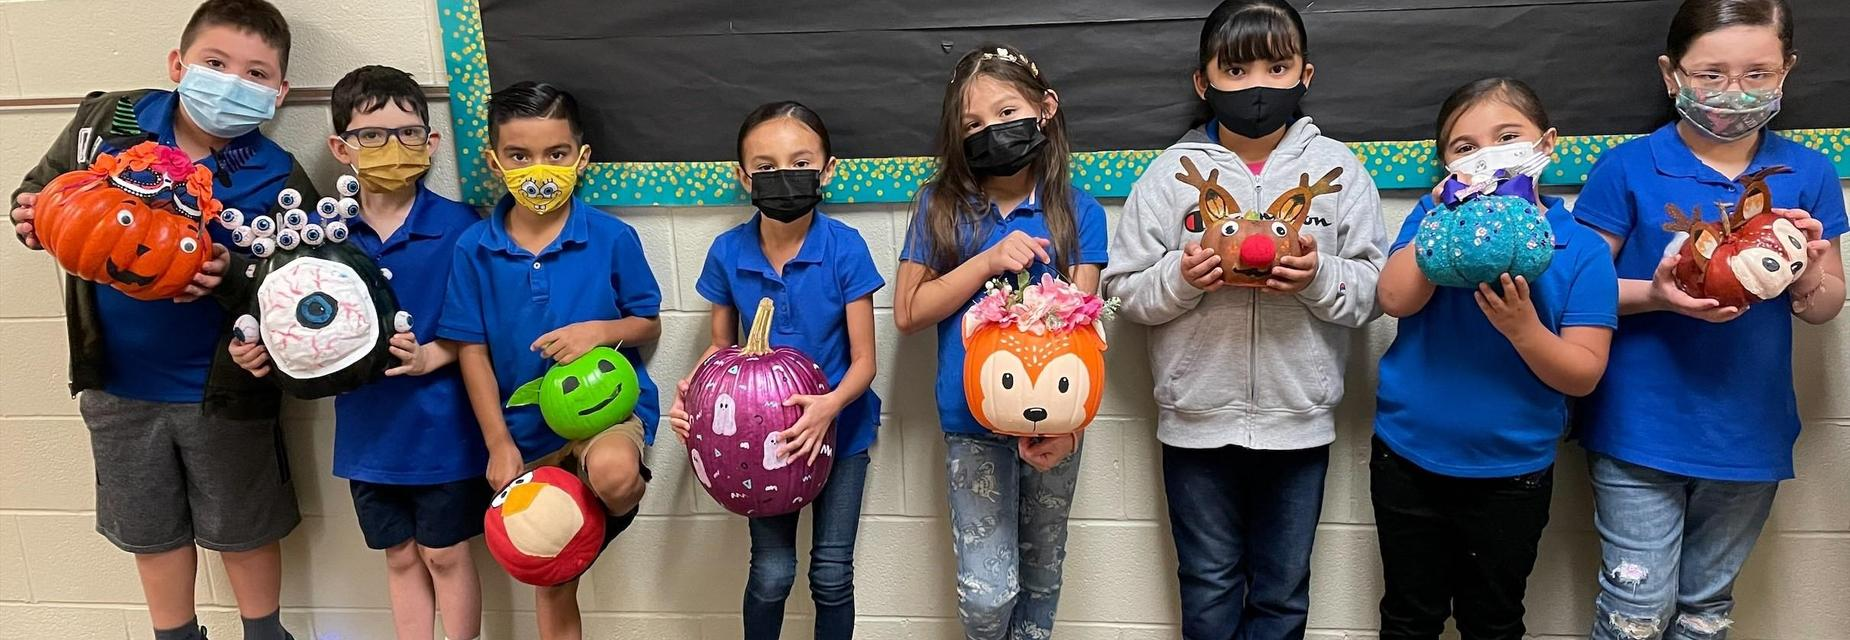 2nd graders with pumpkin characters